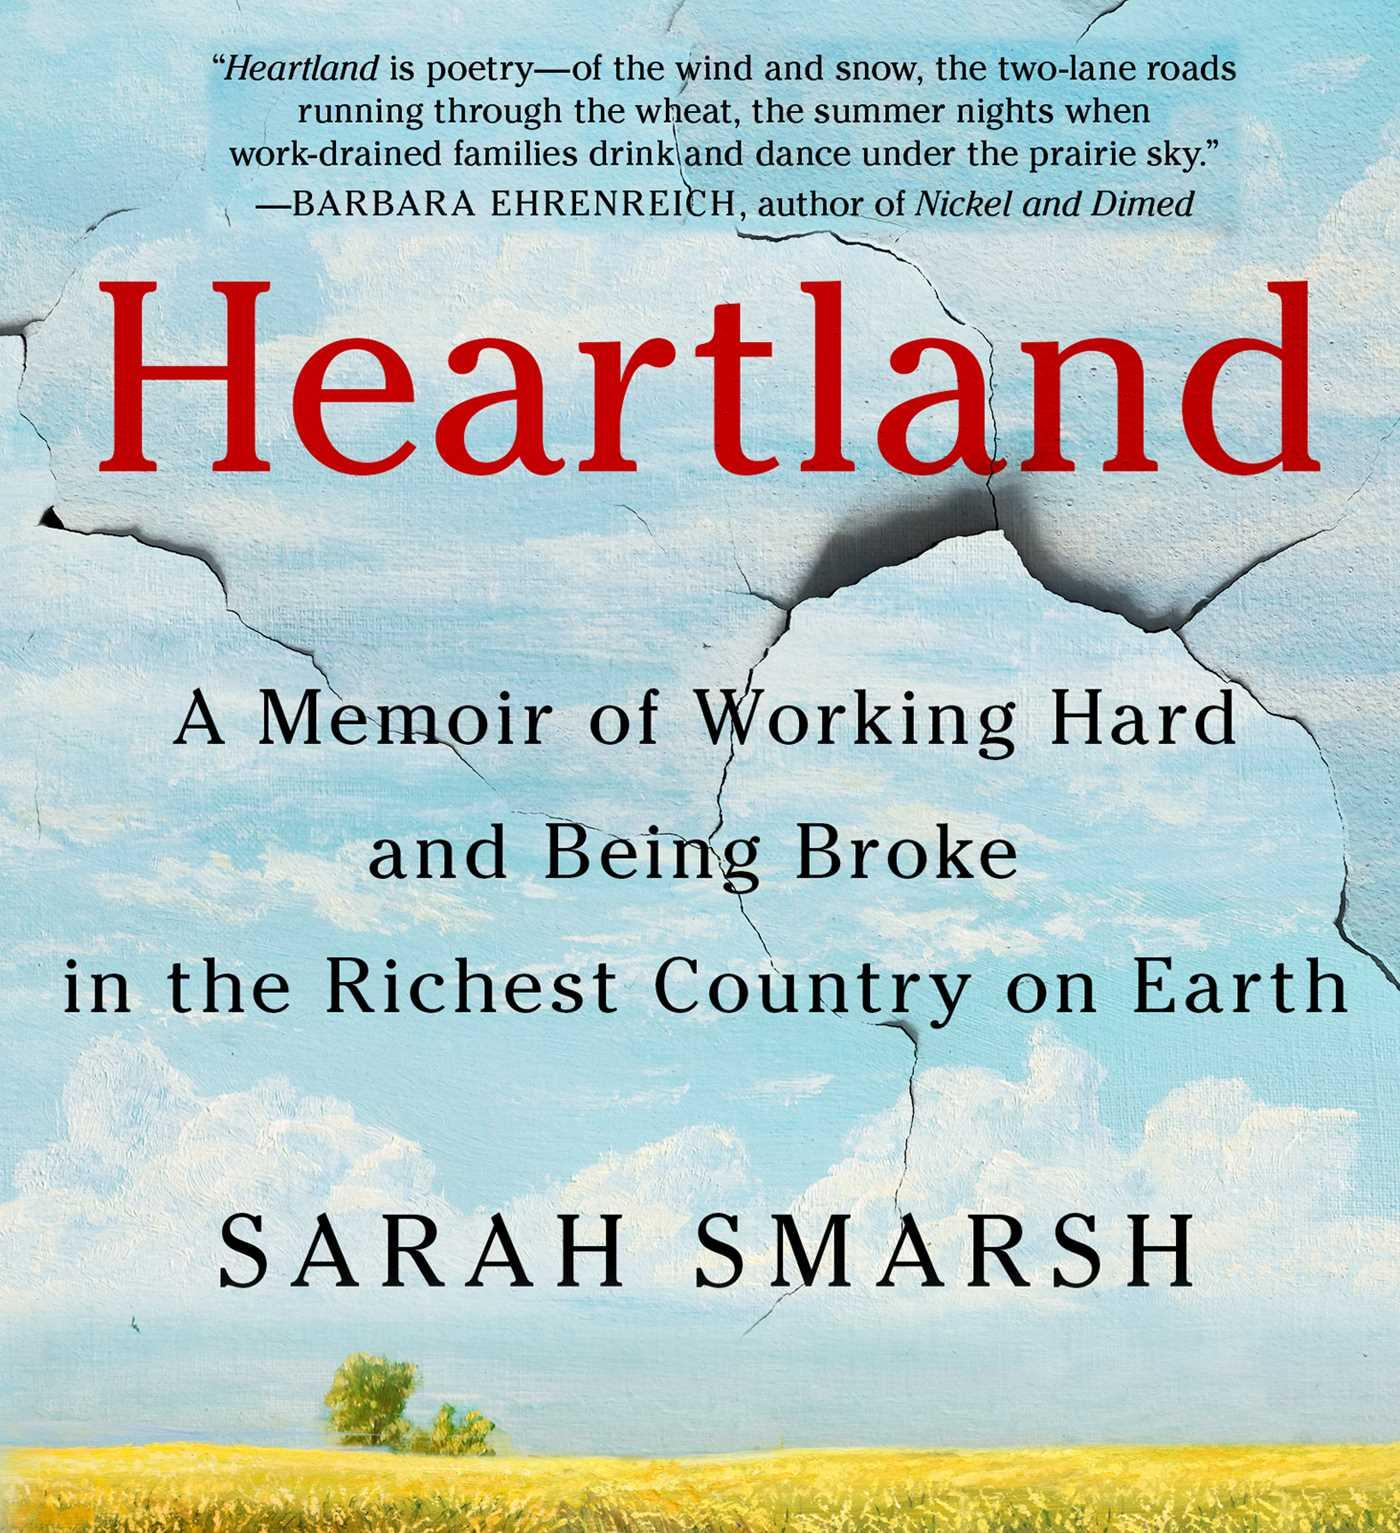 Heartland: A Memoir of Working Hard and Being Broke in the Richest Country on Earth (Other)